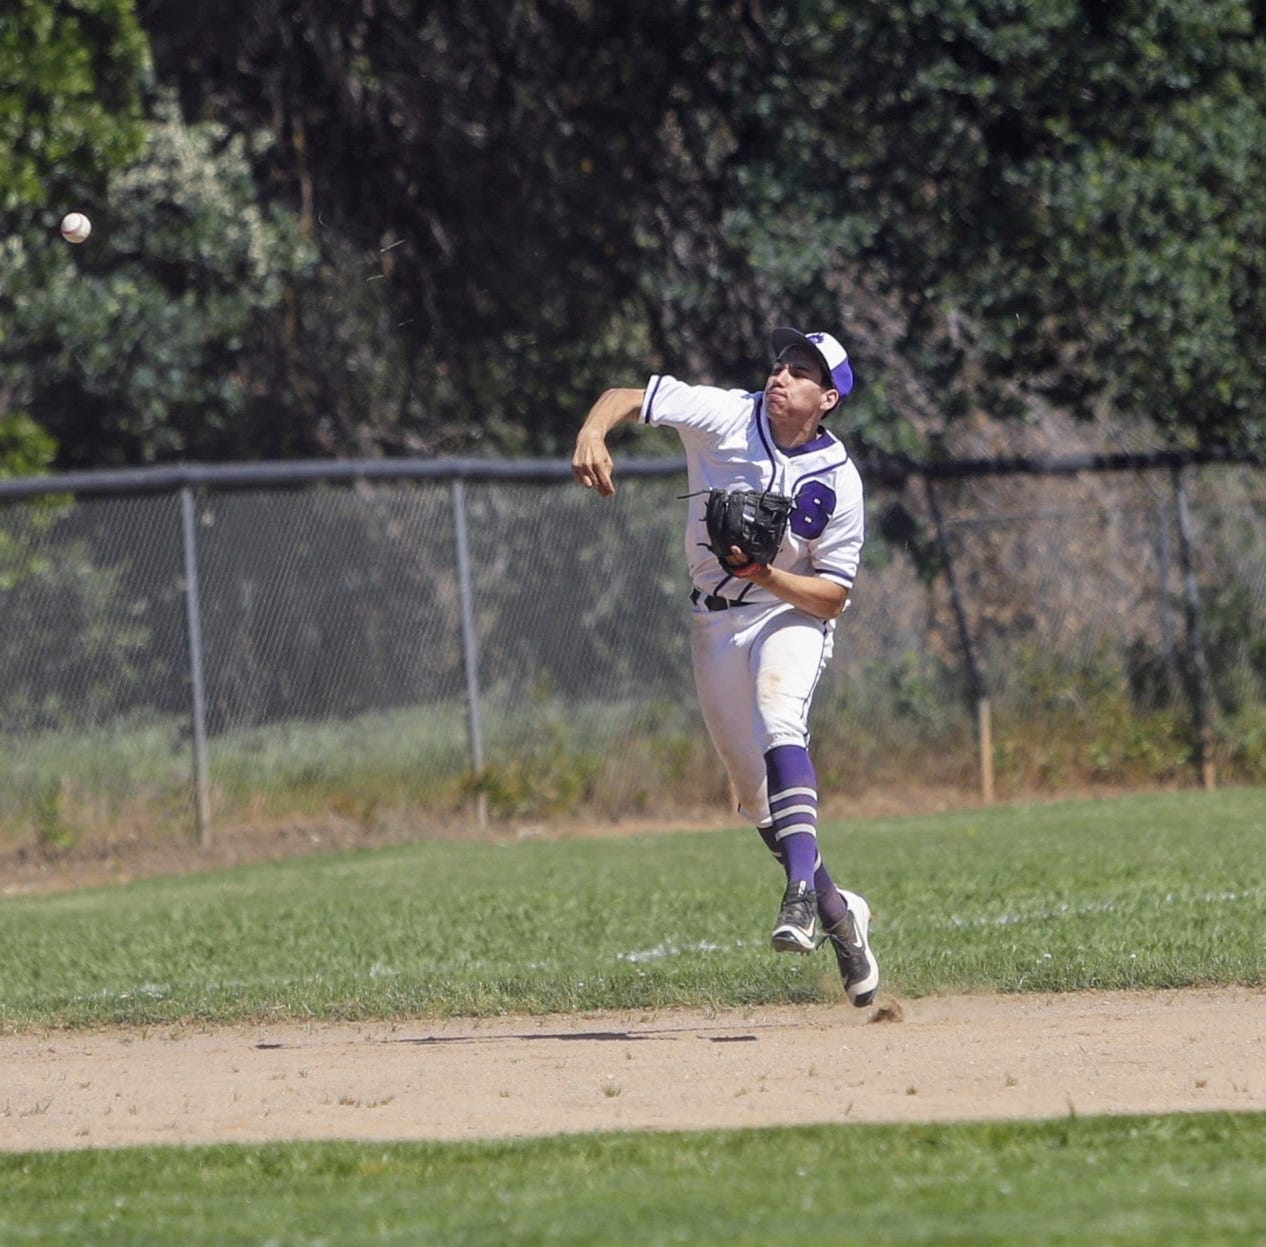 Shasta High advances in baseball playoffs: Redding.com rolling sports blog (May 2019)